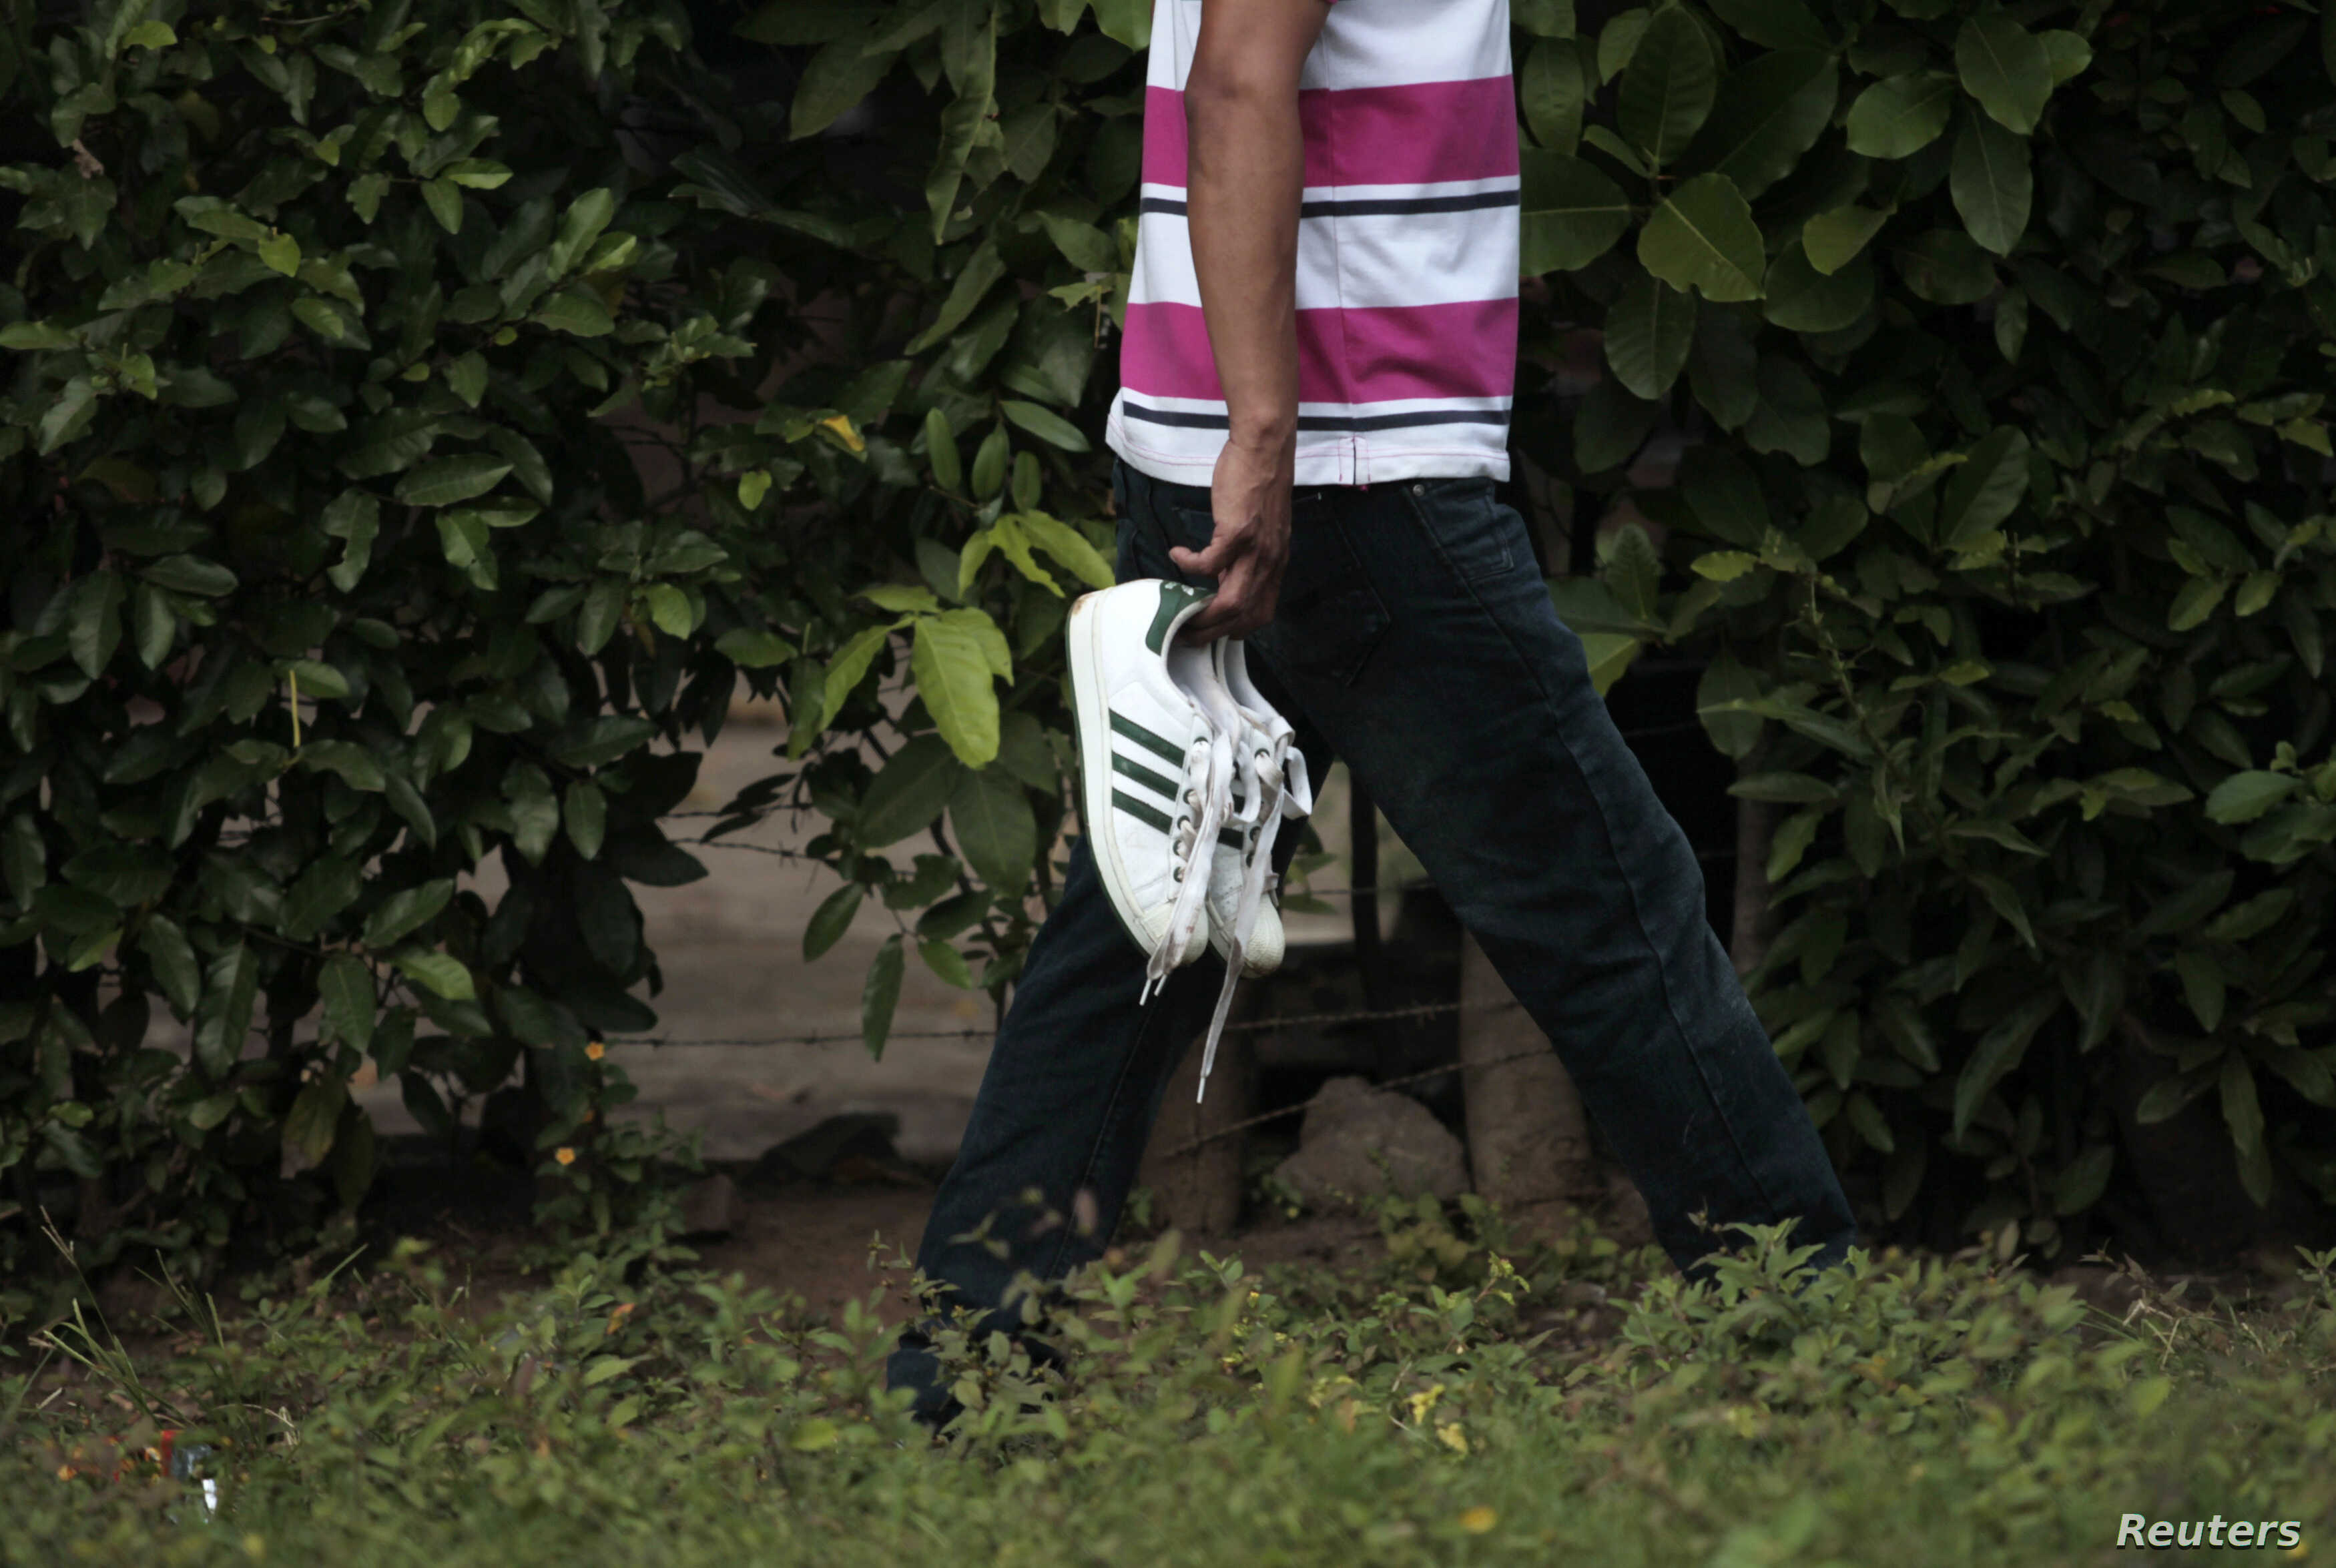 A man carries the shoes of his son after identifying him as among the seven men who were shot during a middle school graduation party in the town of Acajutla, El Salvador, Nov. 25, 2014.